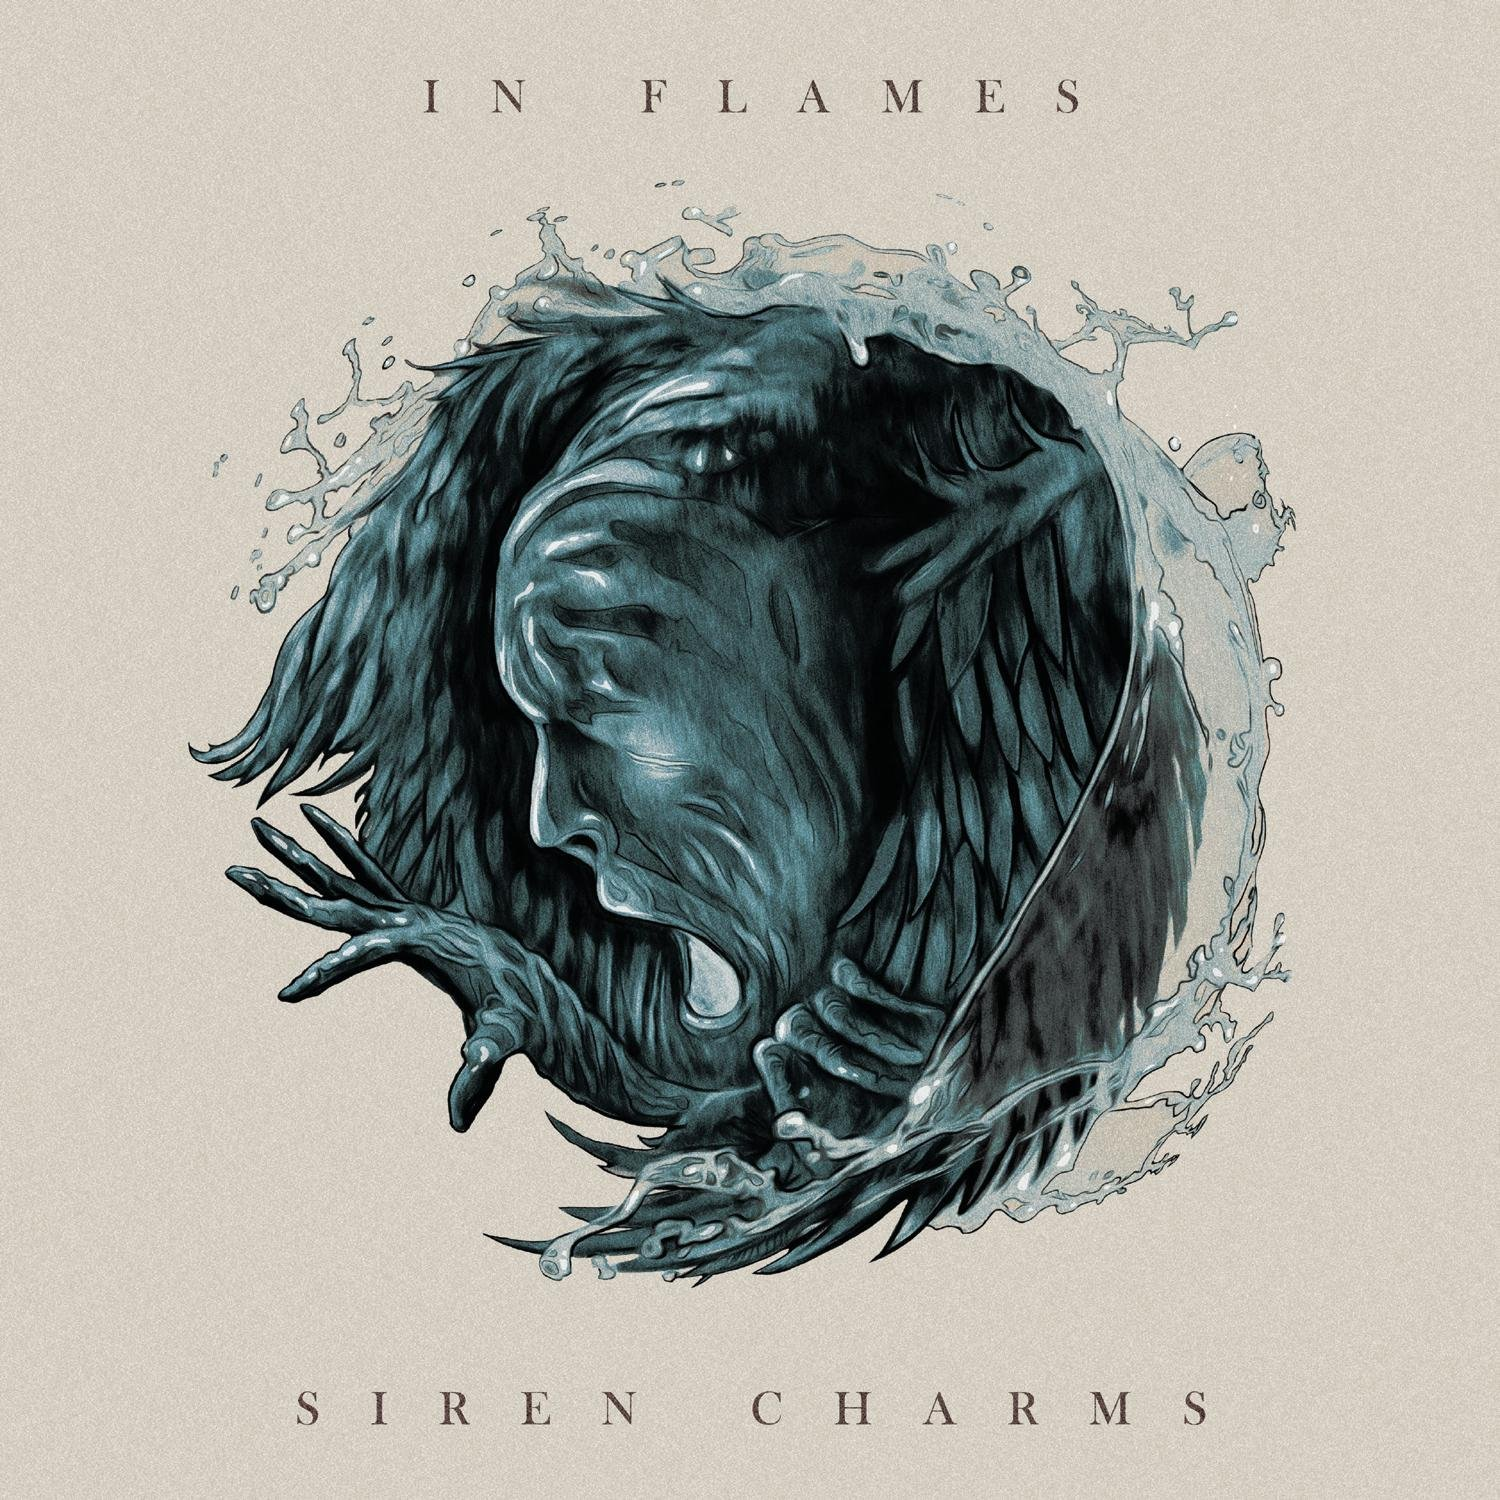 In Flames - Siren Charms album cover